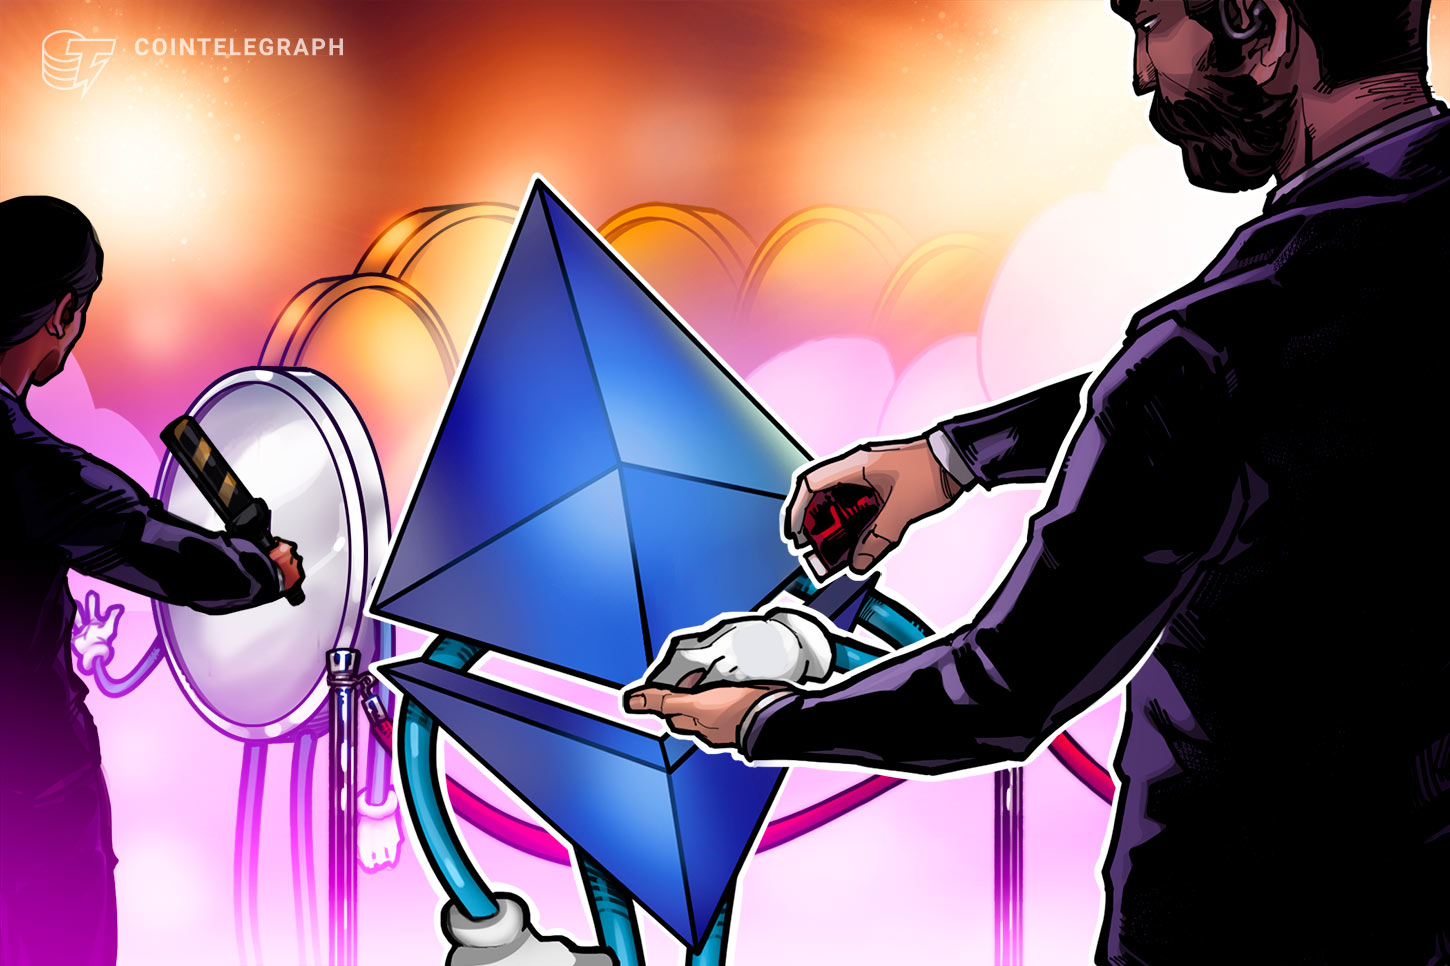 After Ethereum, 'subsequent cease might be increased danger alts,' says Bitcoin investor Raoul Pal